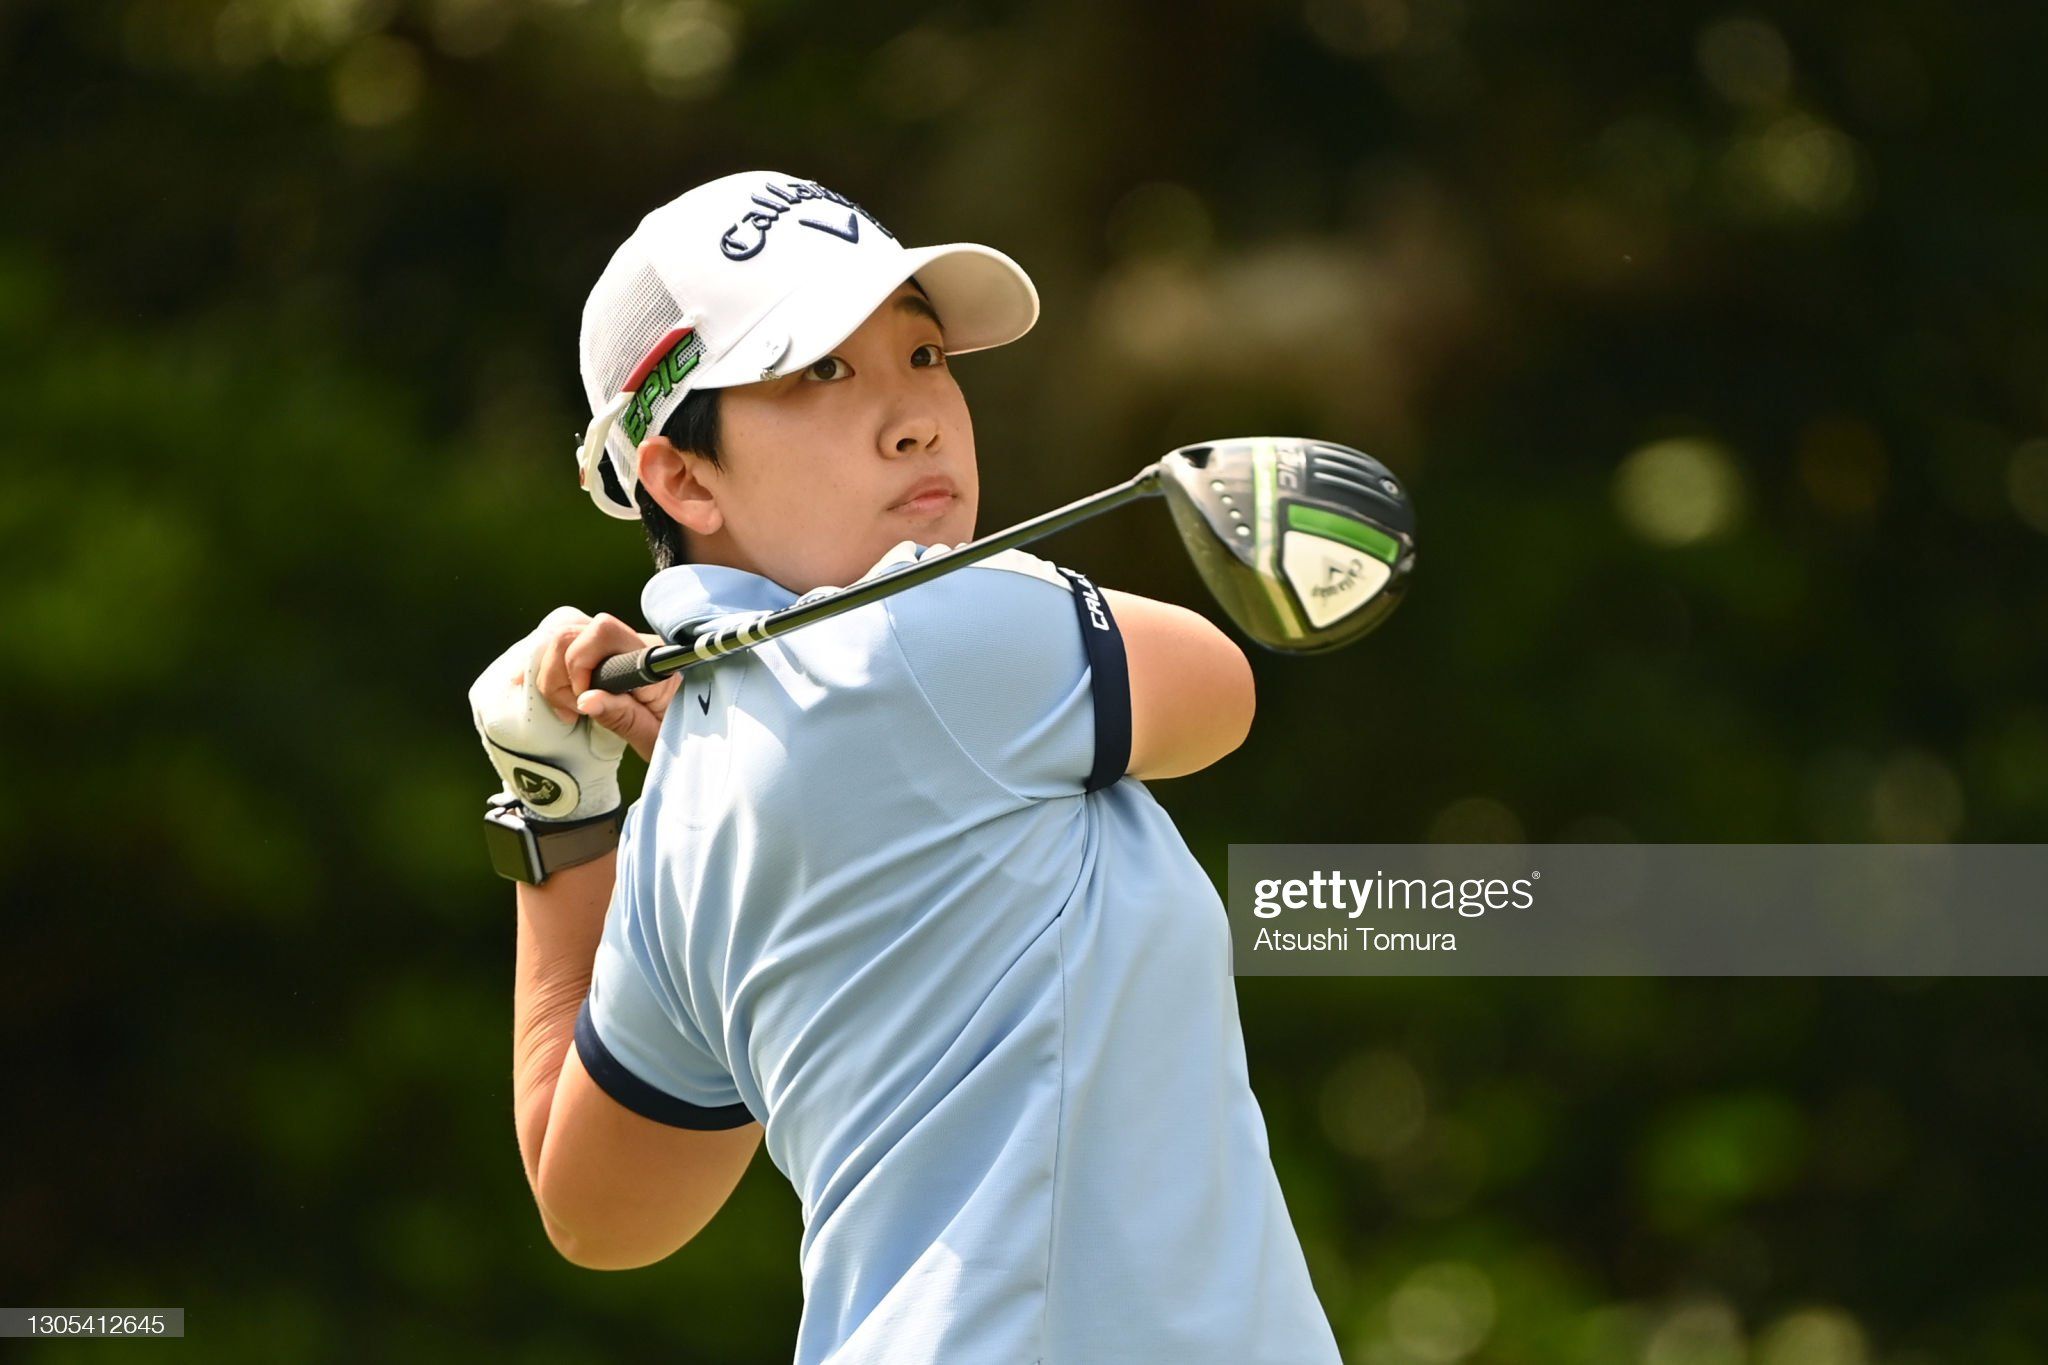 https://media.gettyimages.com/photos/heekyung-bae-of-south-korea-hits-her-tee-shot-on-the-12th-hole-during-picture-id1305412645?s=2048x2048